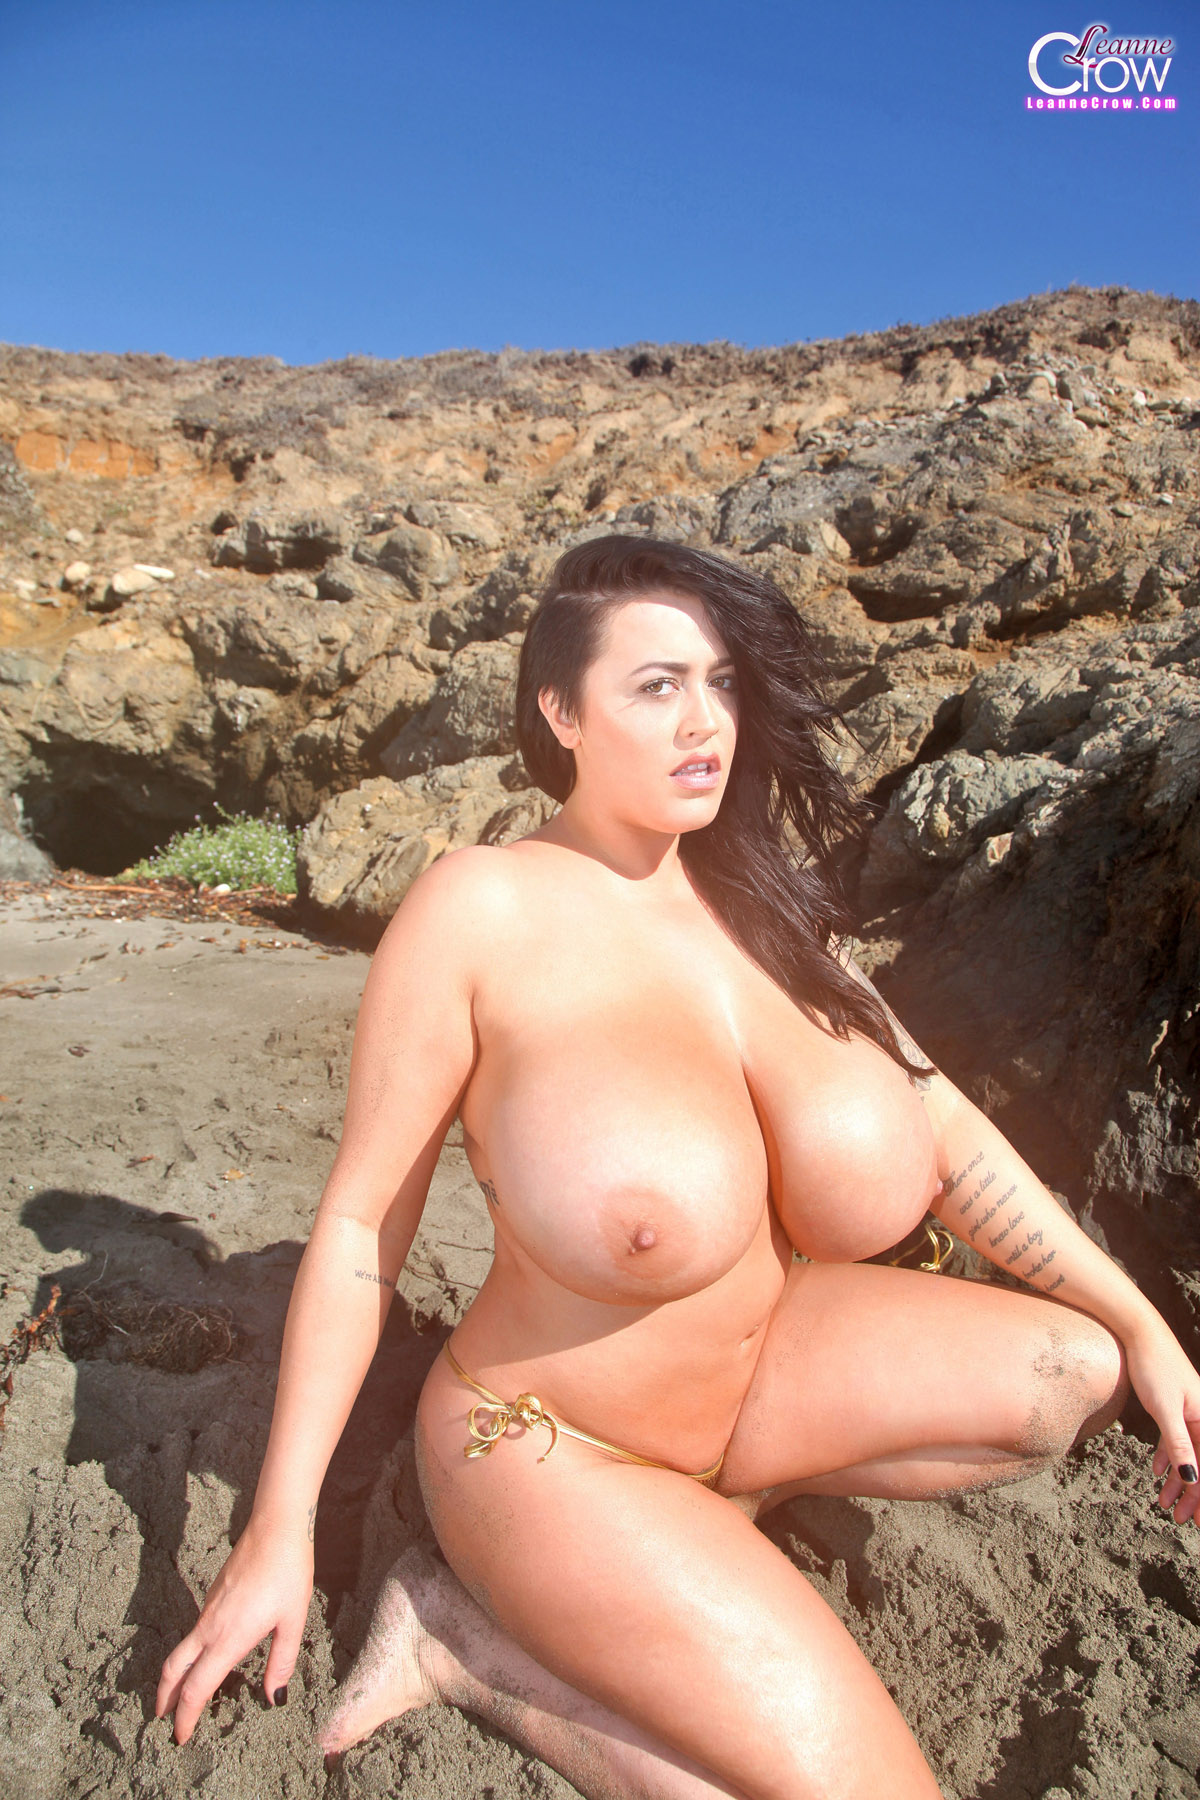 Pity, that Big boobs gold coast nude think, what